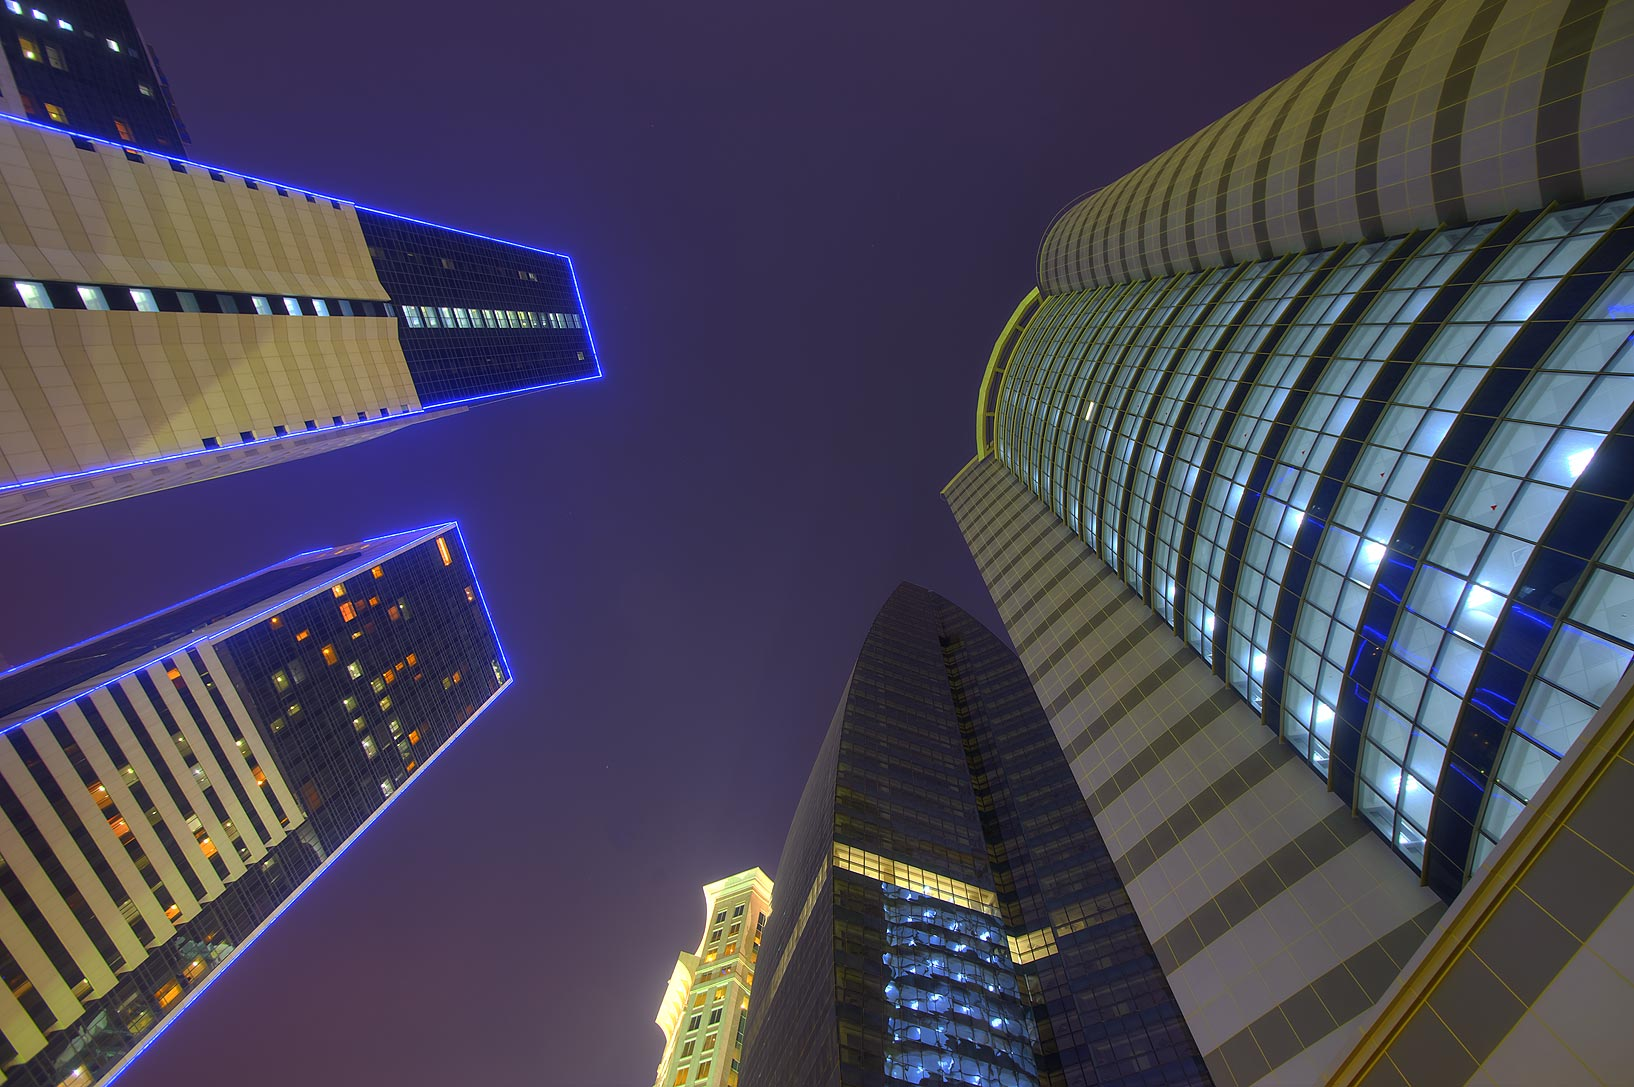 Ezdan Towers at Al Betra St. in West Bay, looking up. Doha, Qatar